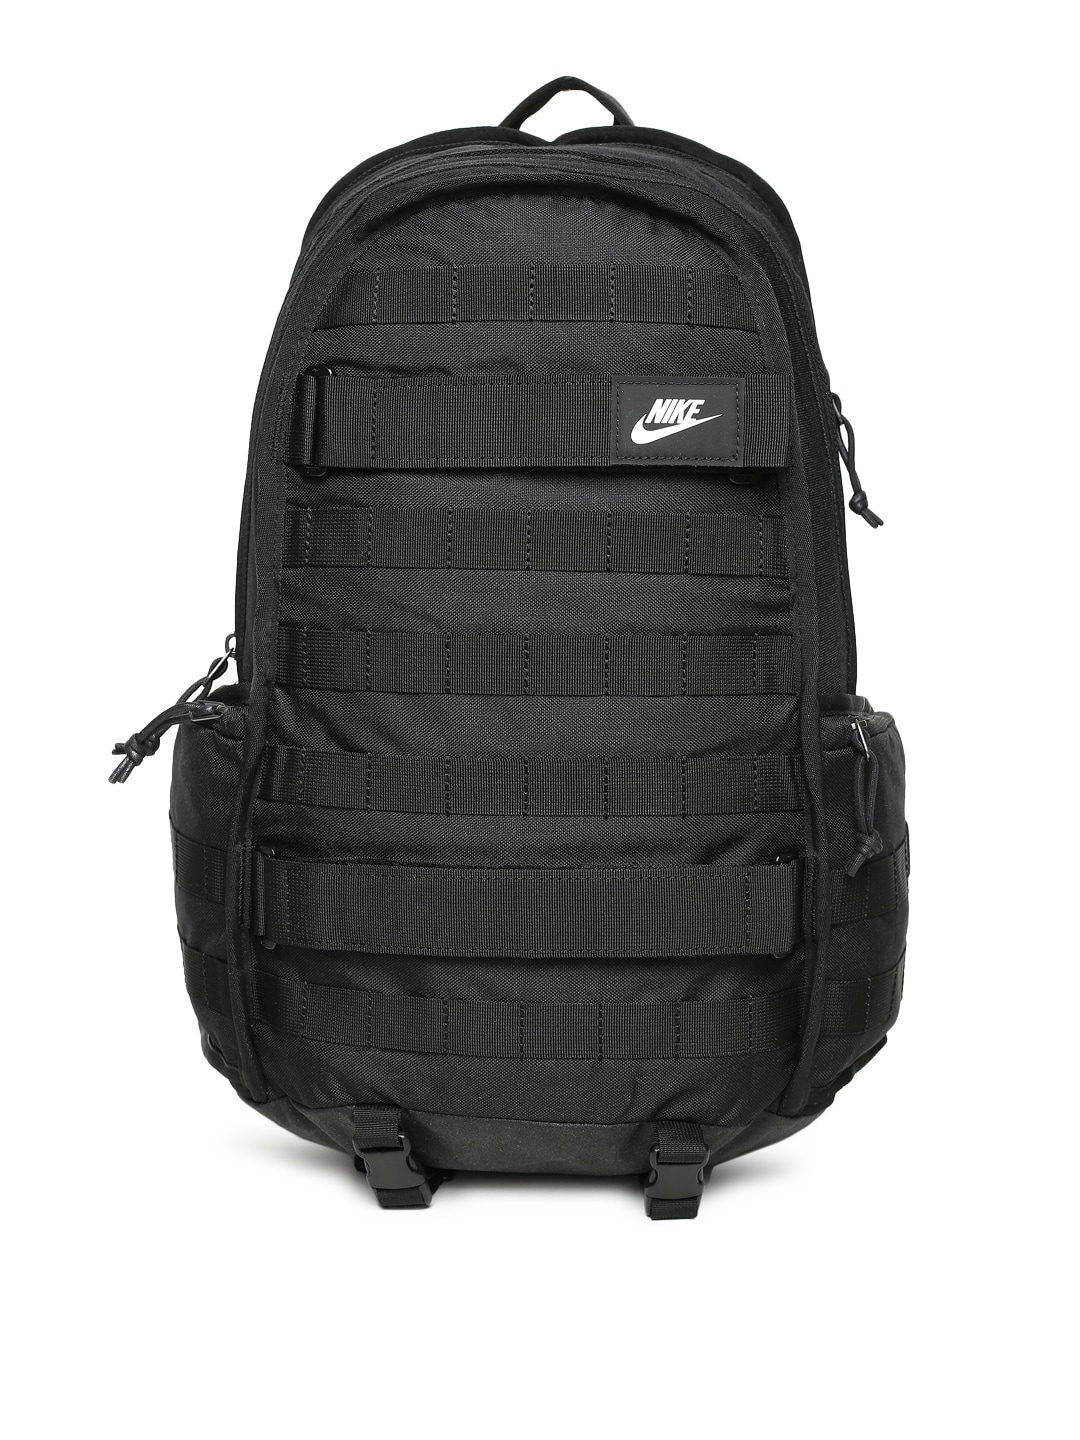 b14e1cb7c2 Mens Bags   Backpacks - Buy Bags   Backpacks for Men Online